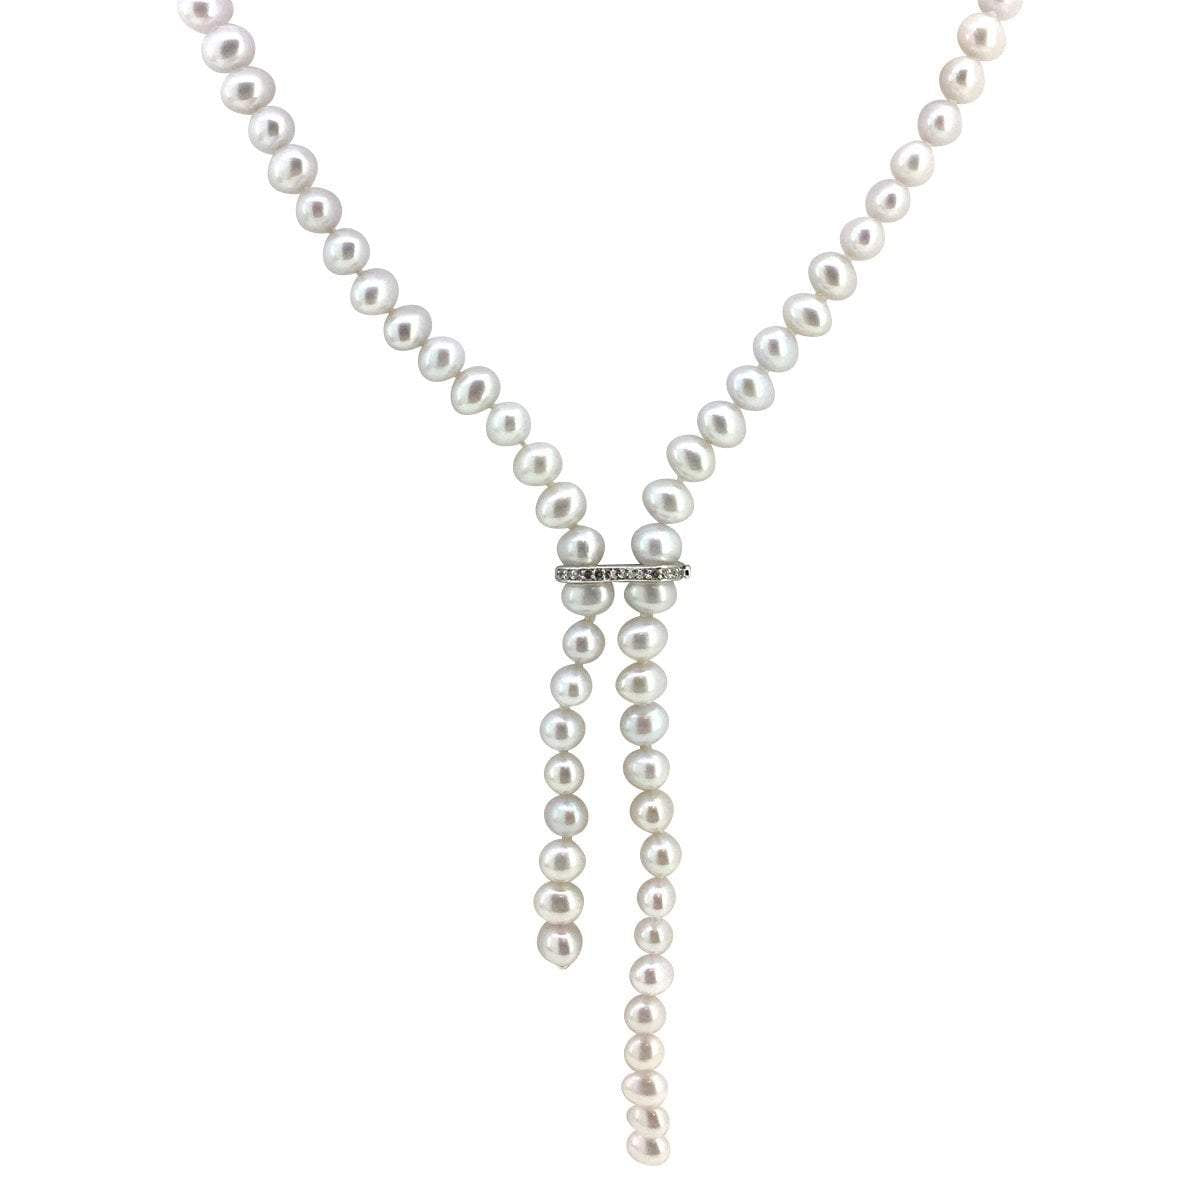 Freshwater Pearl Necklace with Adustable White Topaz Accent Closure